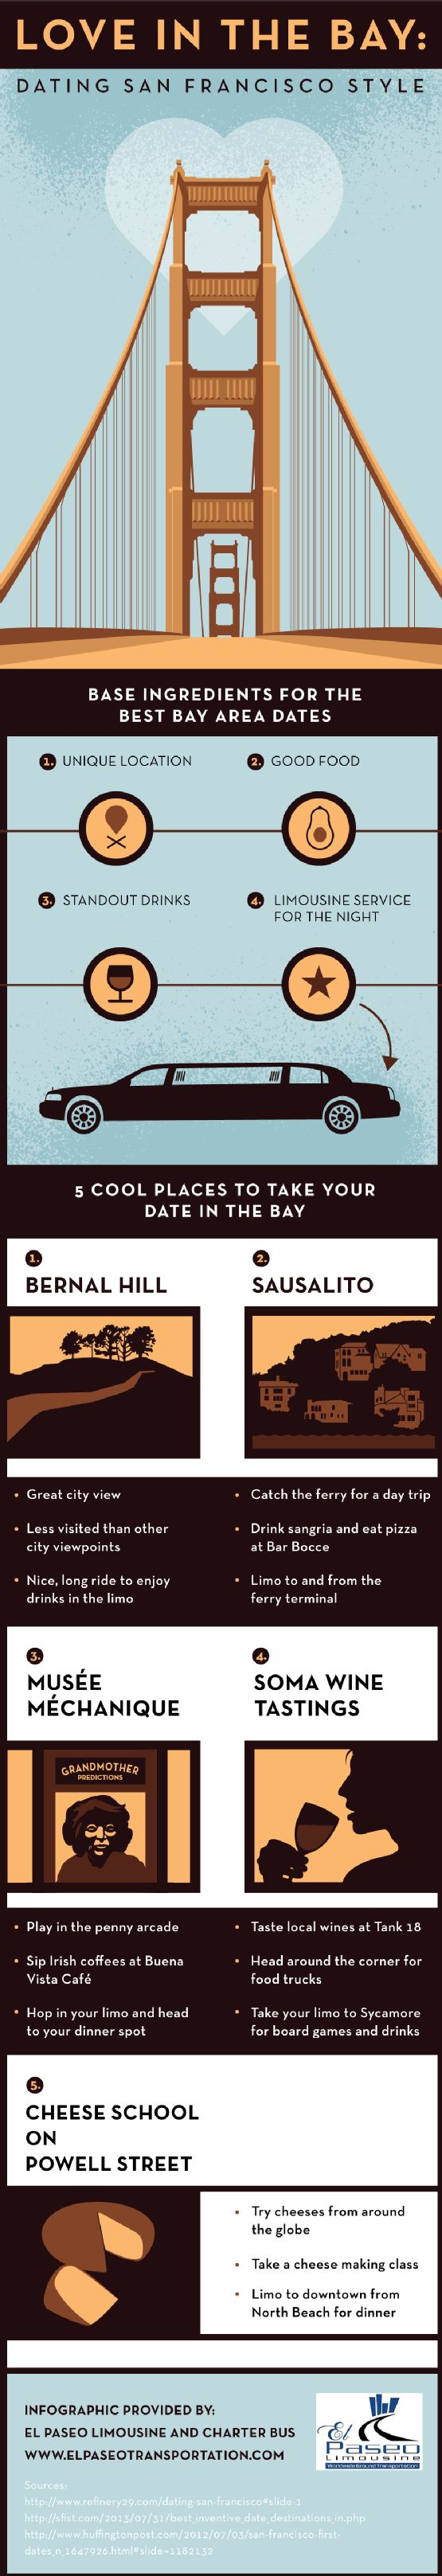 And dating and san francisco